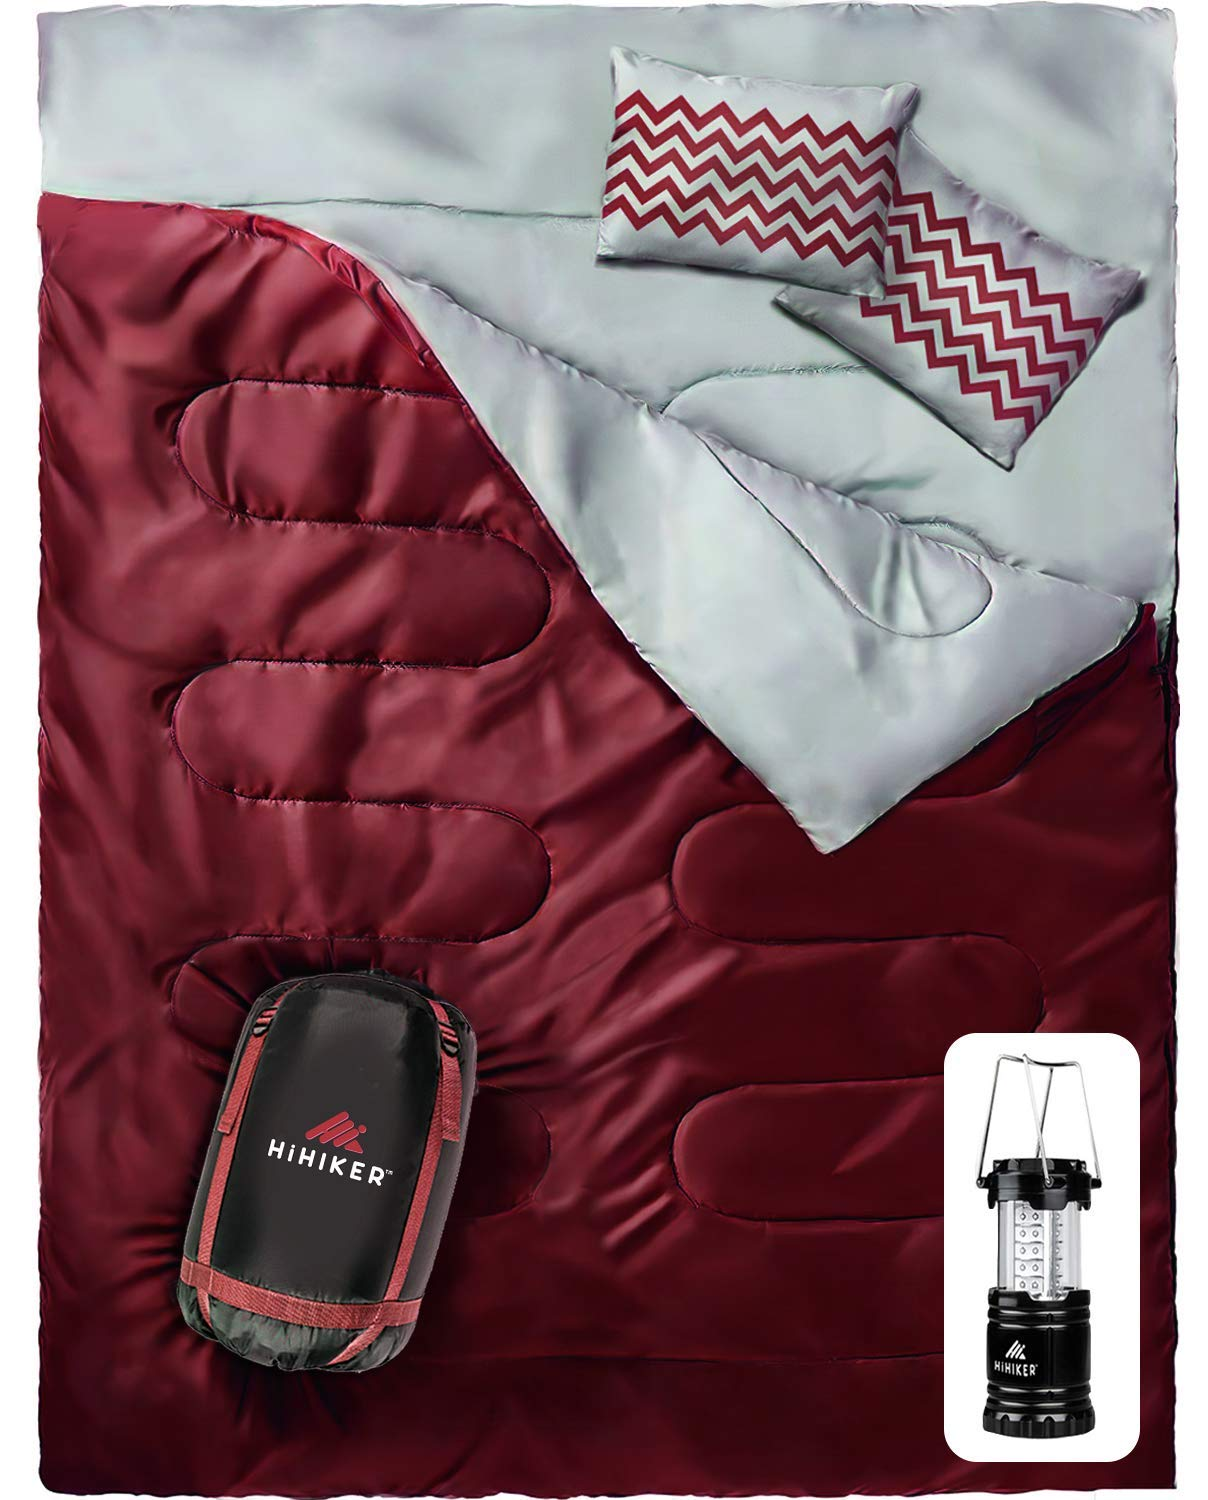 HiHiker Double Sleeping Bag Queen Size XL - Bonus Camping Light - for Camping, Hiking Backpacking and Cold Weather, Portable, Waterproof and Lightweight - 2 Person Sleeping Bag by HiHiker